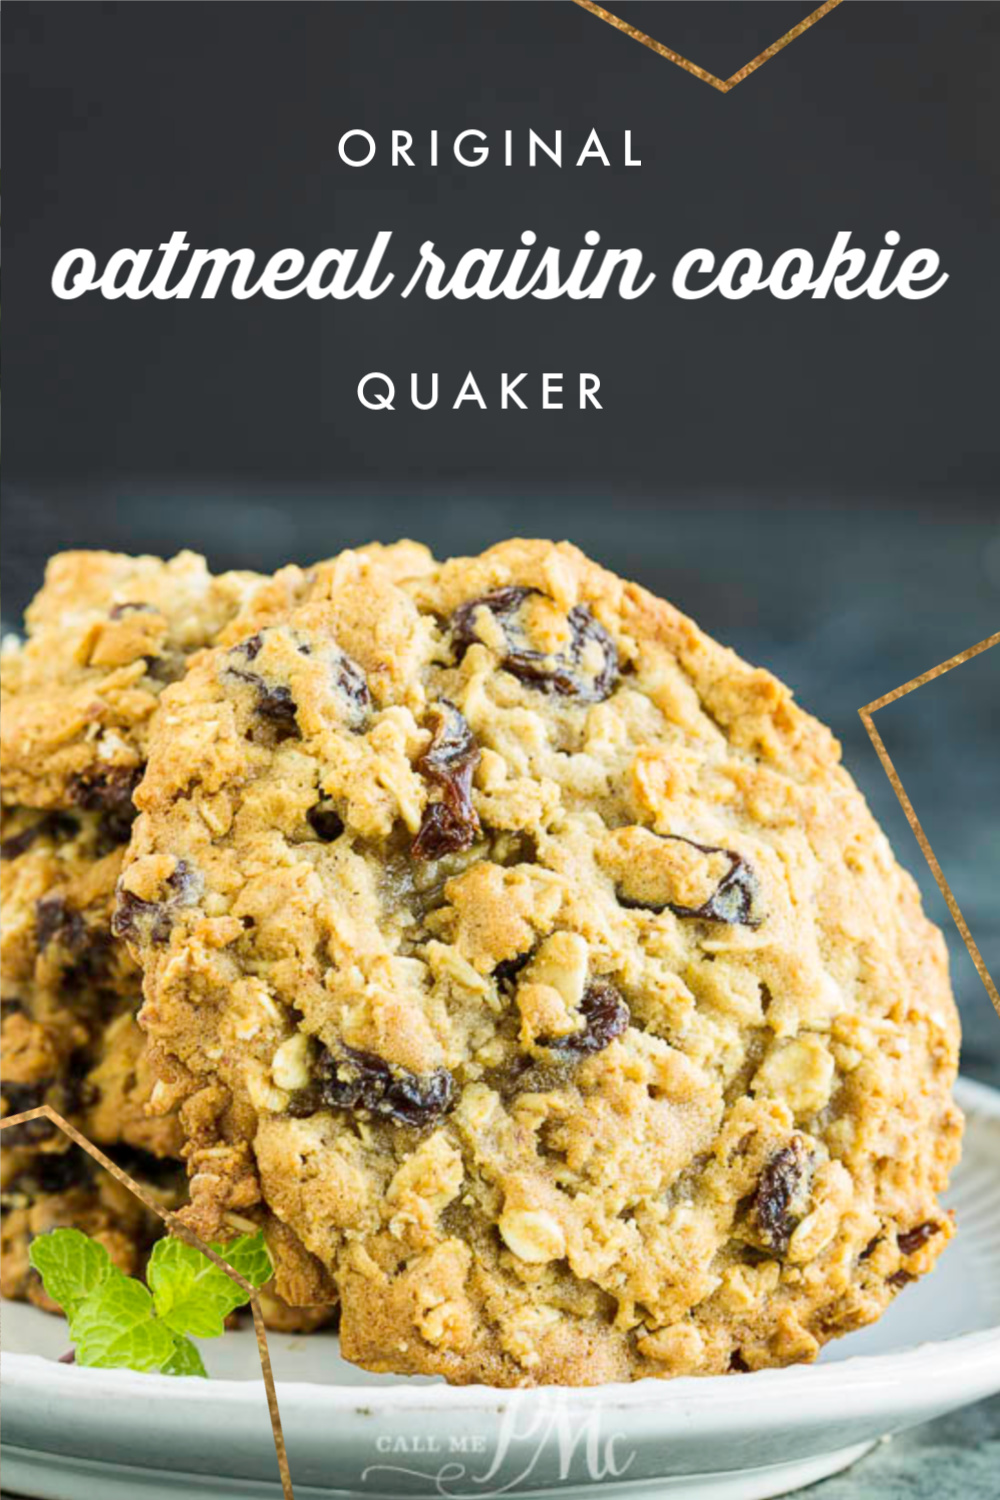 Original Quaker Oatmeal Raisin Cookie Recipe has crispy edges, chewy centers, and raisins studded throughout. Vanishing oatmeal cookies. #cookie #cookietray #Christmascookies #cookies #easy #fromscratch #oats #Quaker #raisin #oldfashioned #callmepmc via @pmctunejones